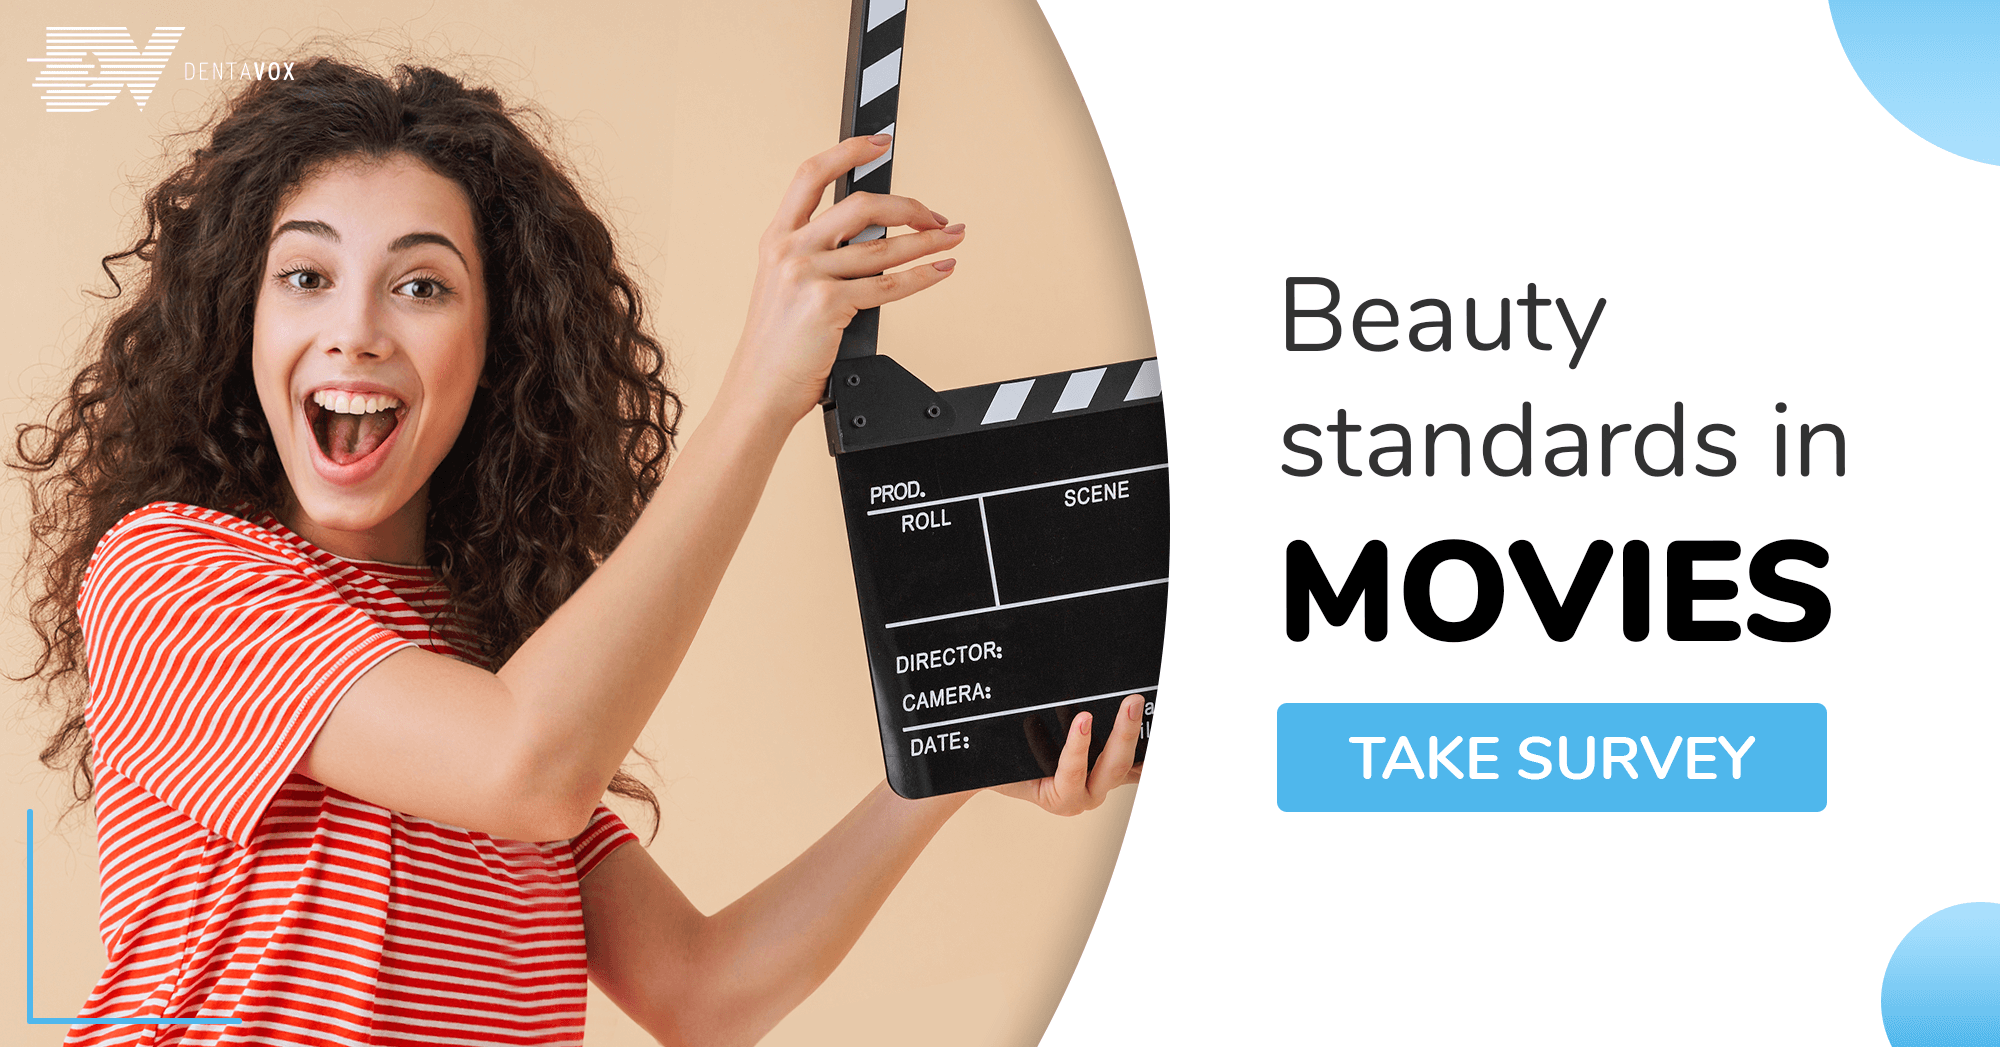 Dentavox paid surveys movies influence beauty soc